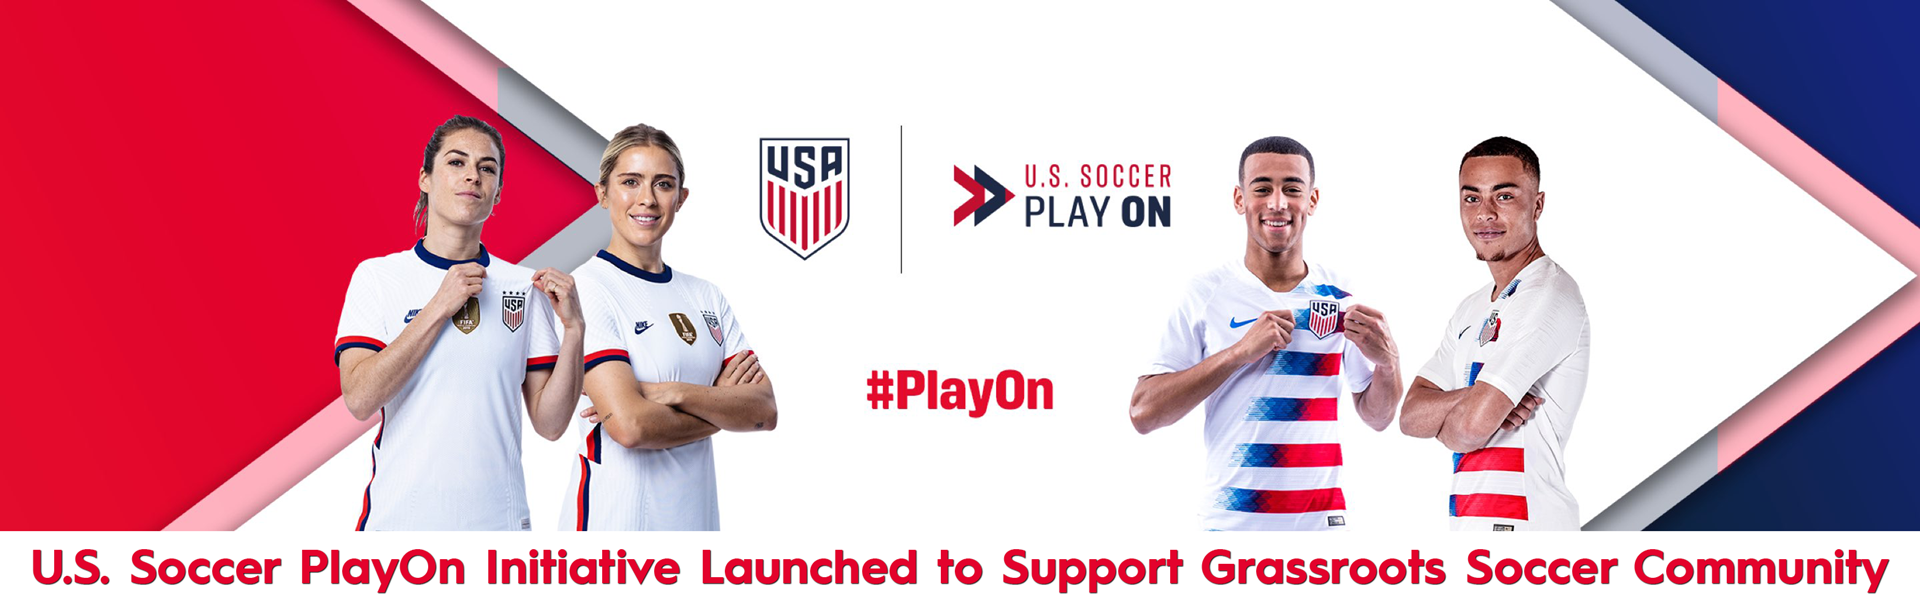 US_Soccer_Play_On_Initiative_Launced_Notice